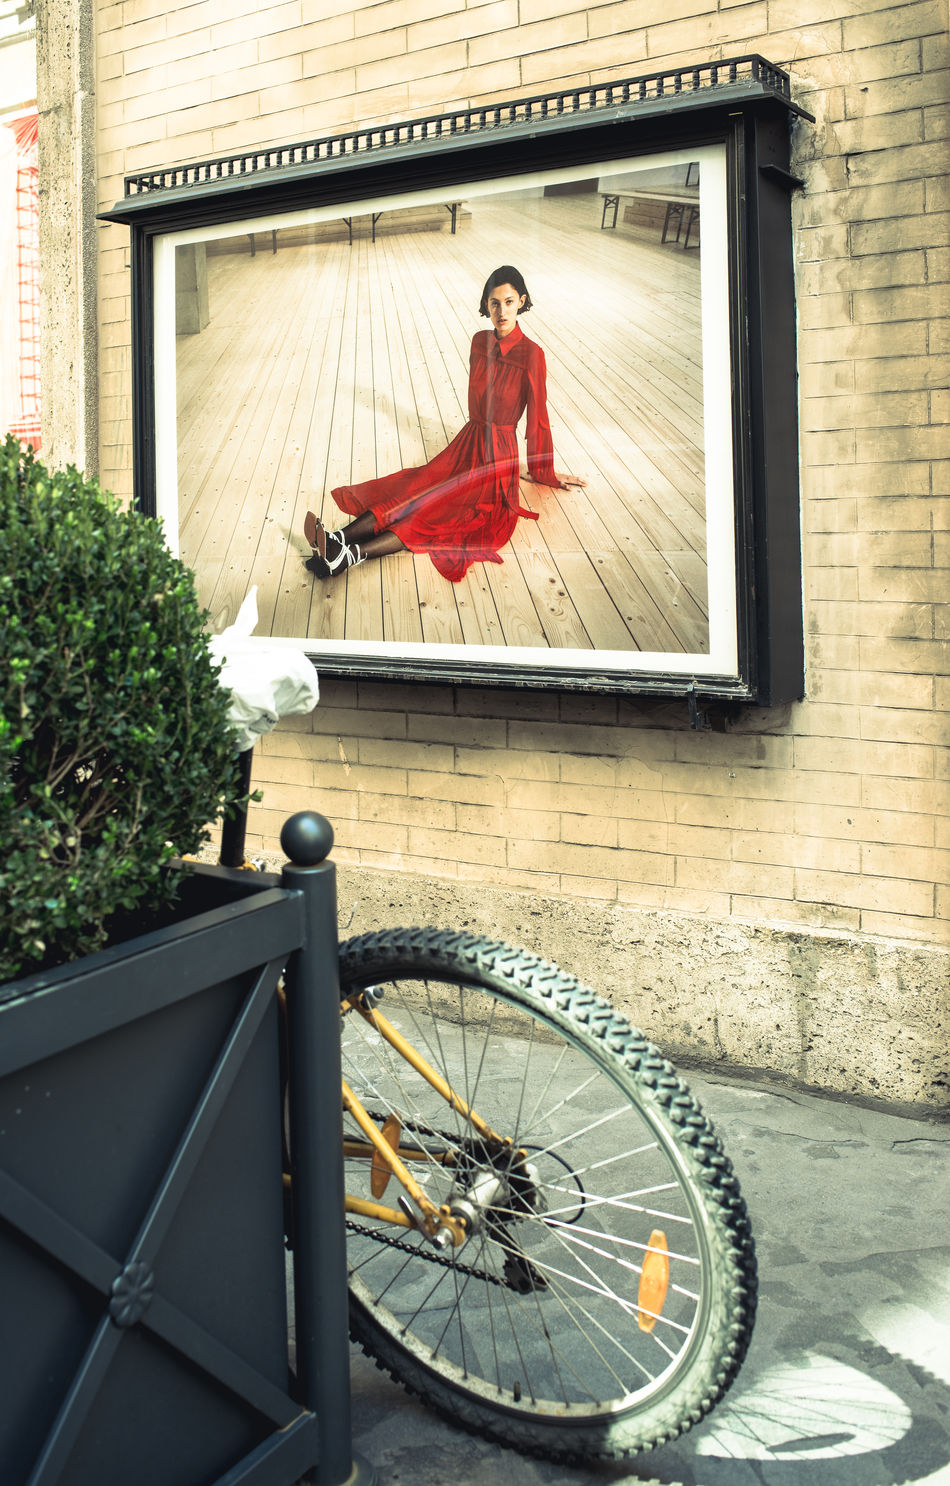 Advertising Art Is Everywhere Bicycle Bike Building Exterior Built Structure Day Full Length Lifestyles People Red Dress Women